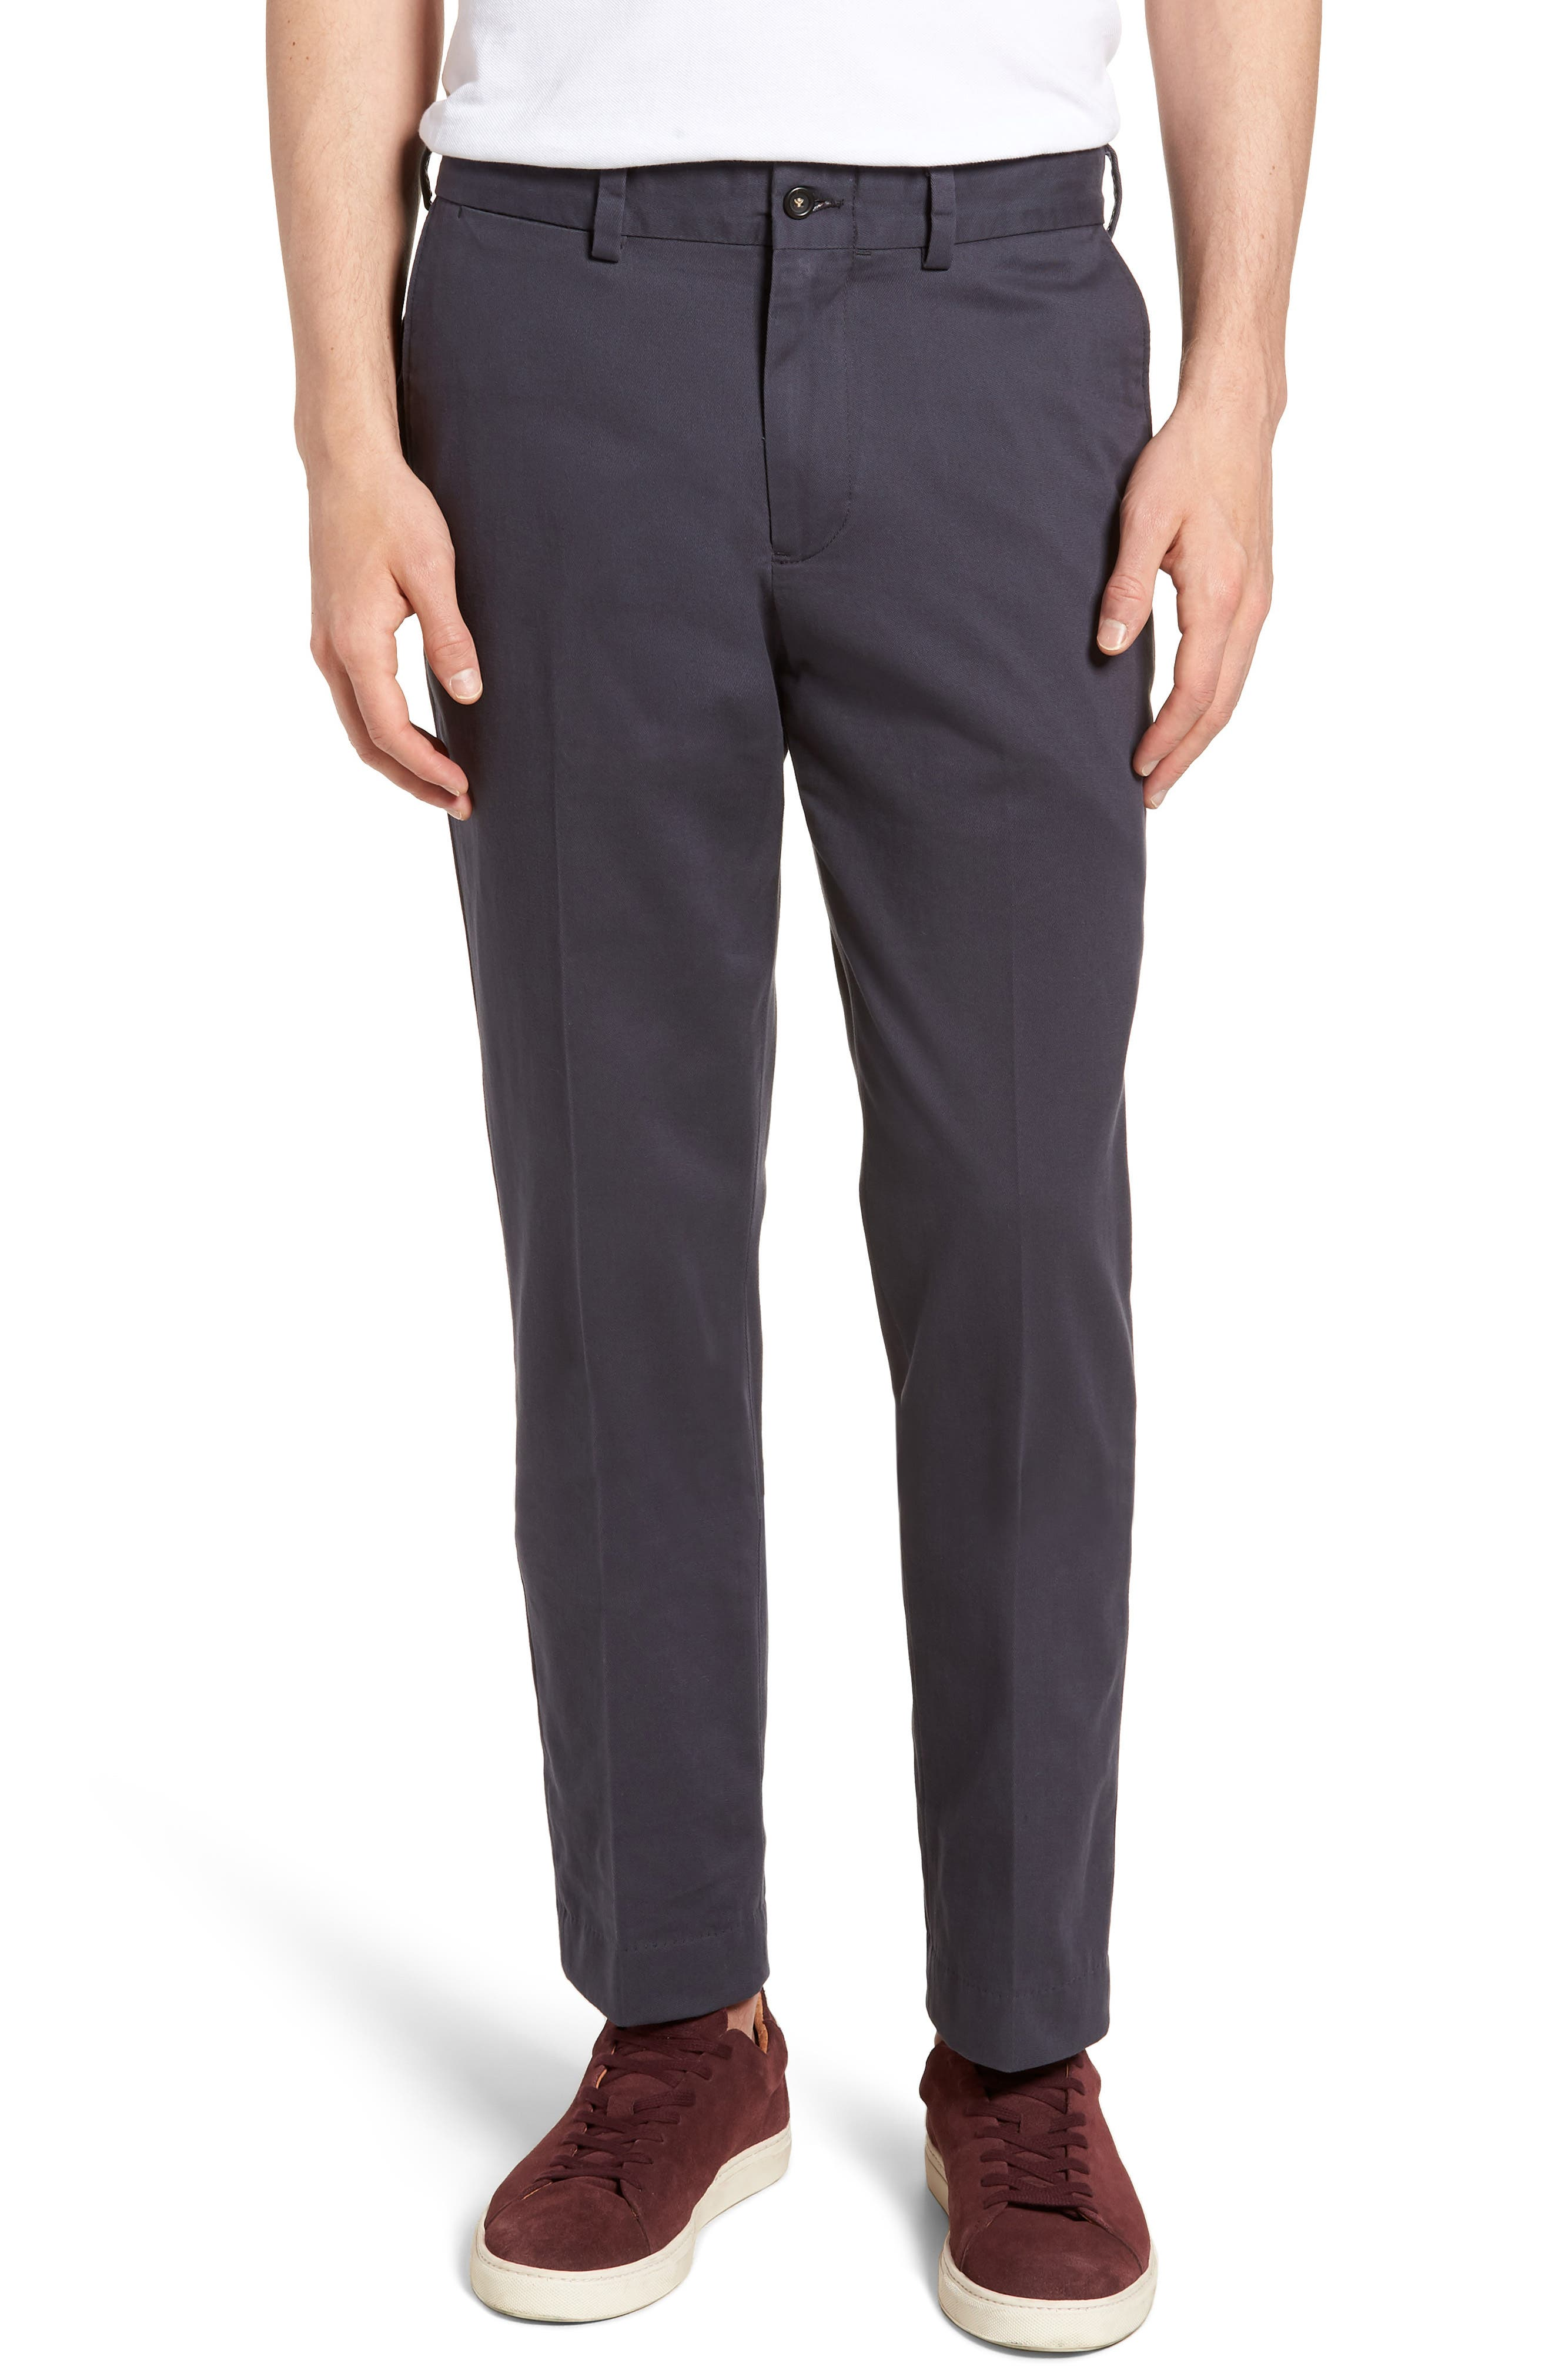 M3 Straight Fit Flat Front Vintage Twill Pants,                             Main thumbnail 1, color,